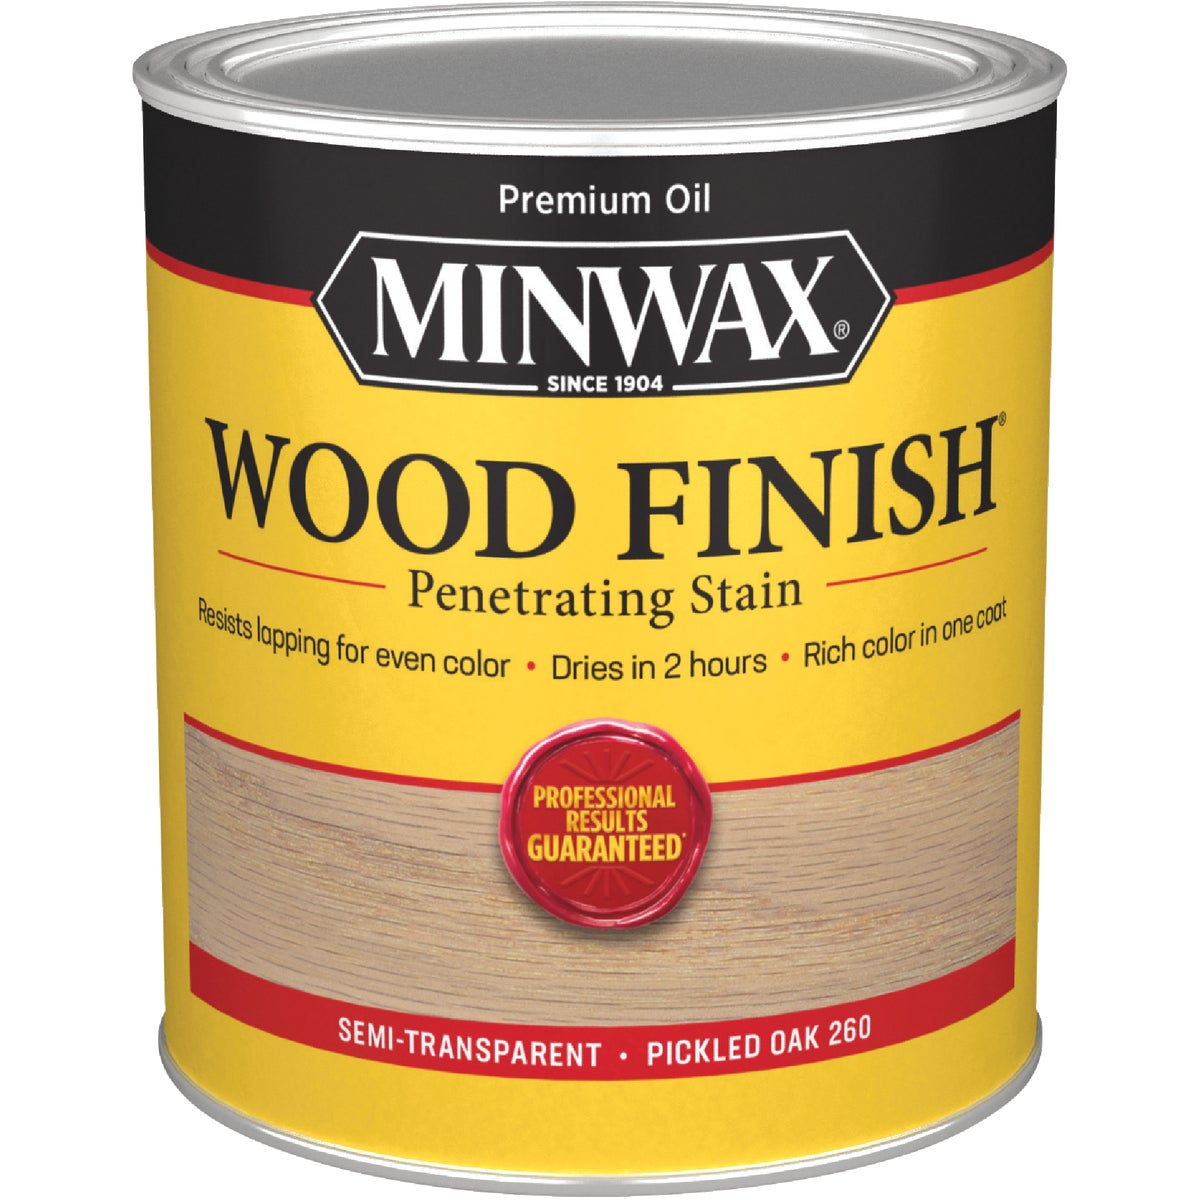 PICKLED OAK WOOD STAIN - 70042 by Minwax Company